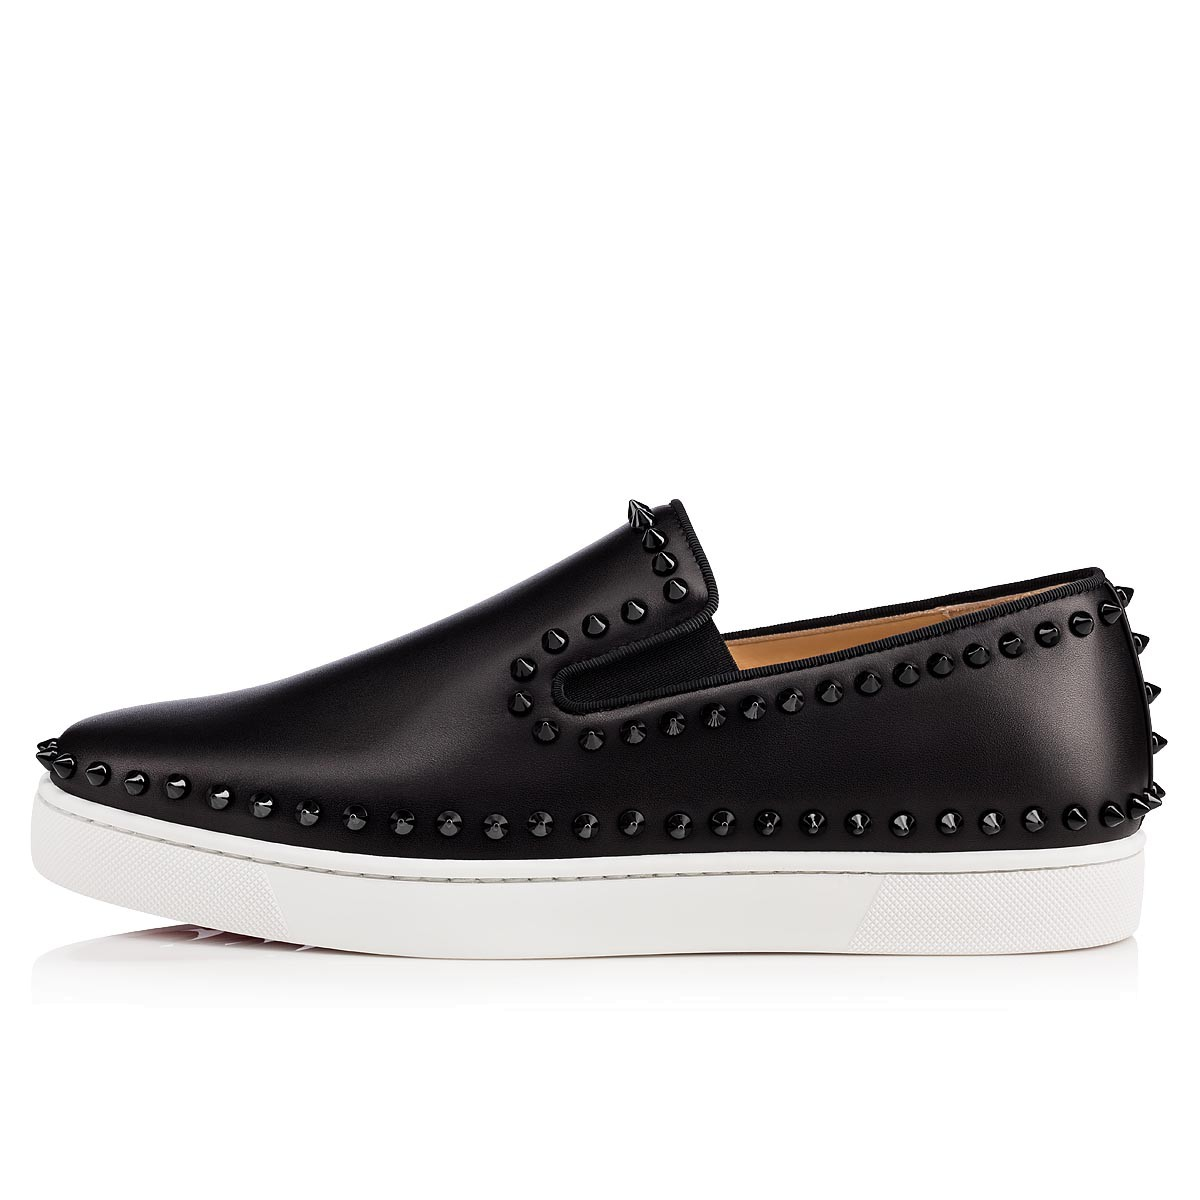 Shoes - Pik Boat Men's Flat - Christian Louboutin